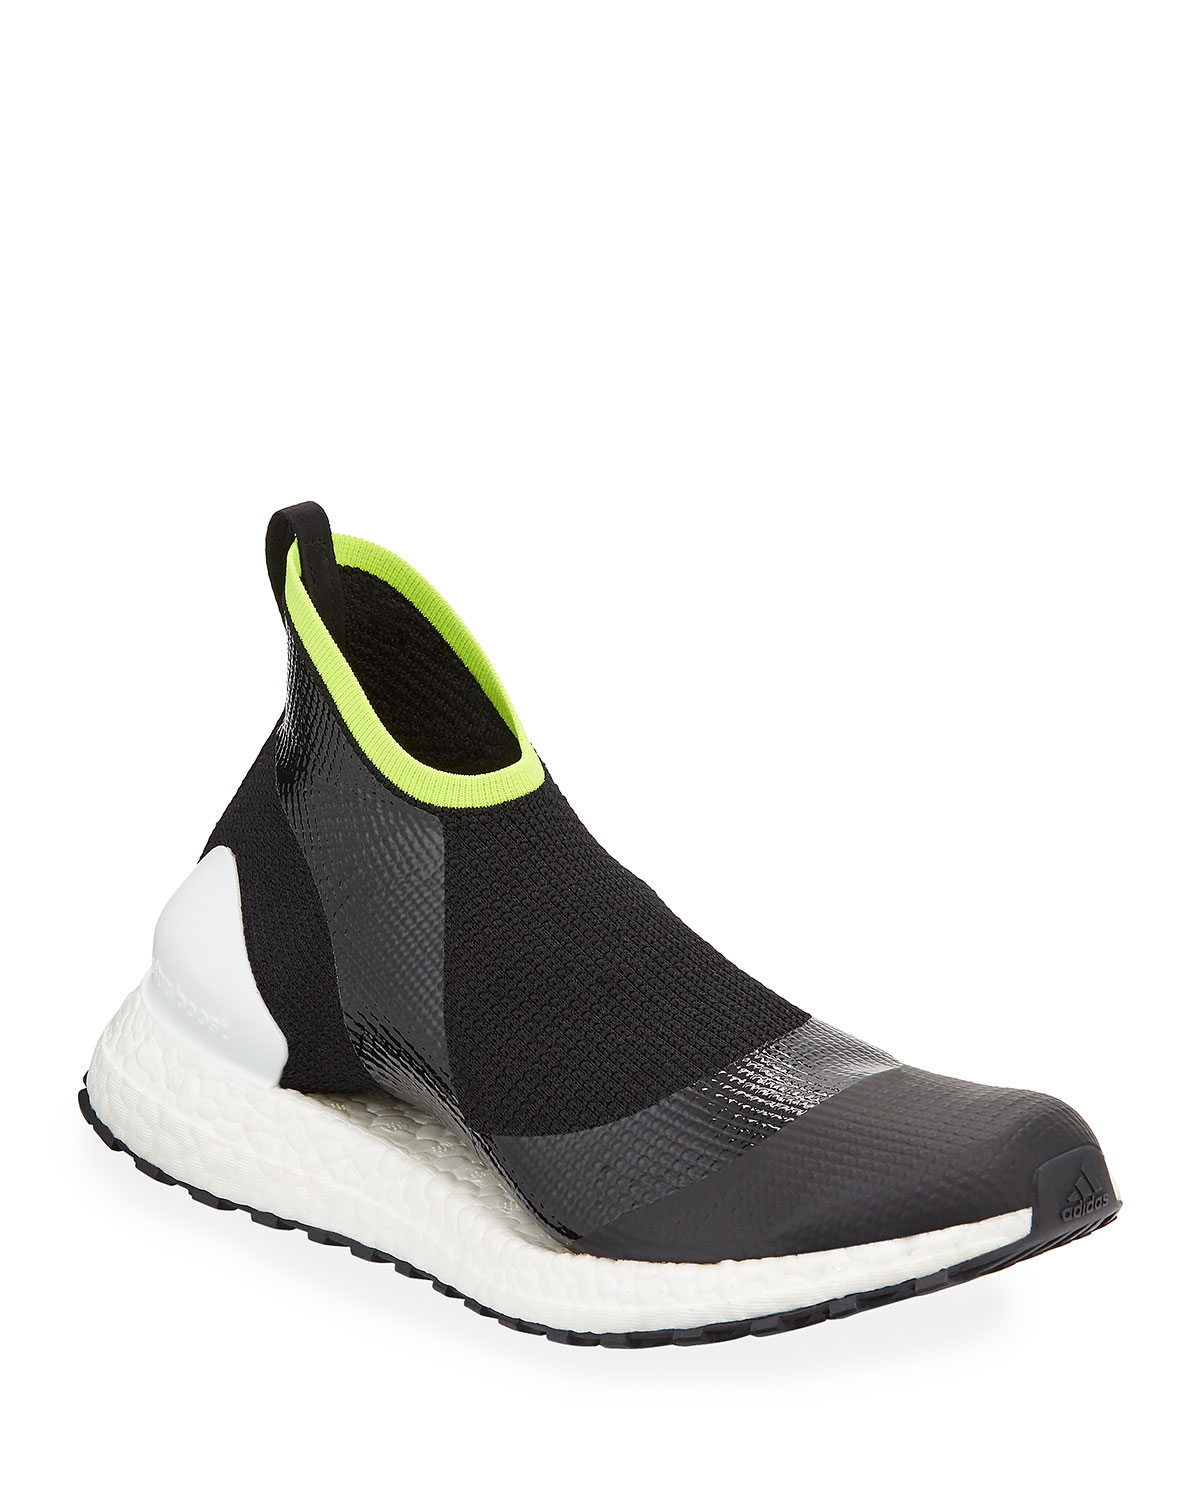 7a305a48a348 adidas by Stella McCartney UltraBOOST X ATR Engineered Mesh Sneakers ...